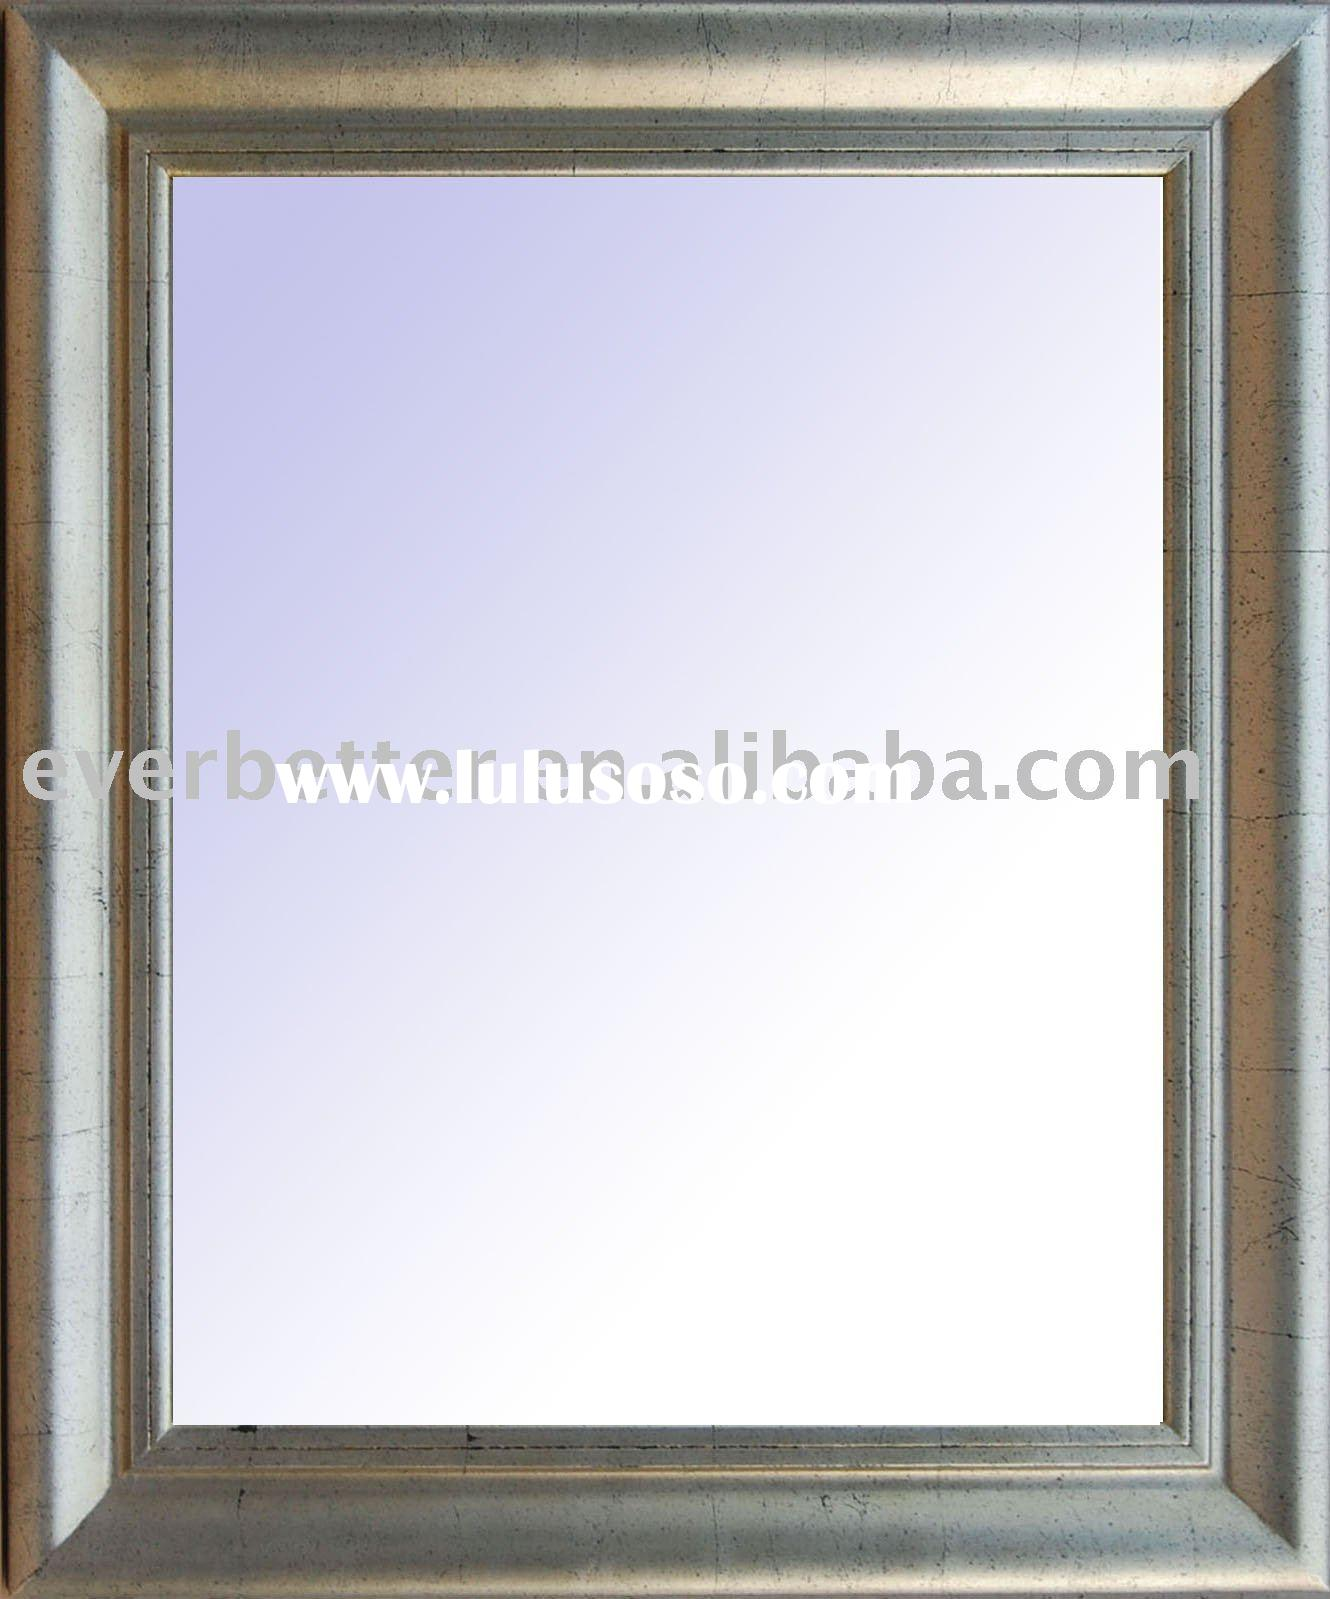 oil painting frame, oil painting frame Manufacturers in LuLuSoSo ...